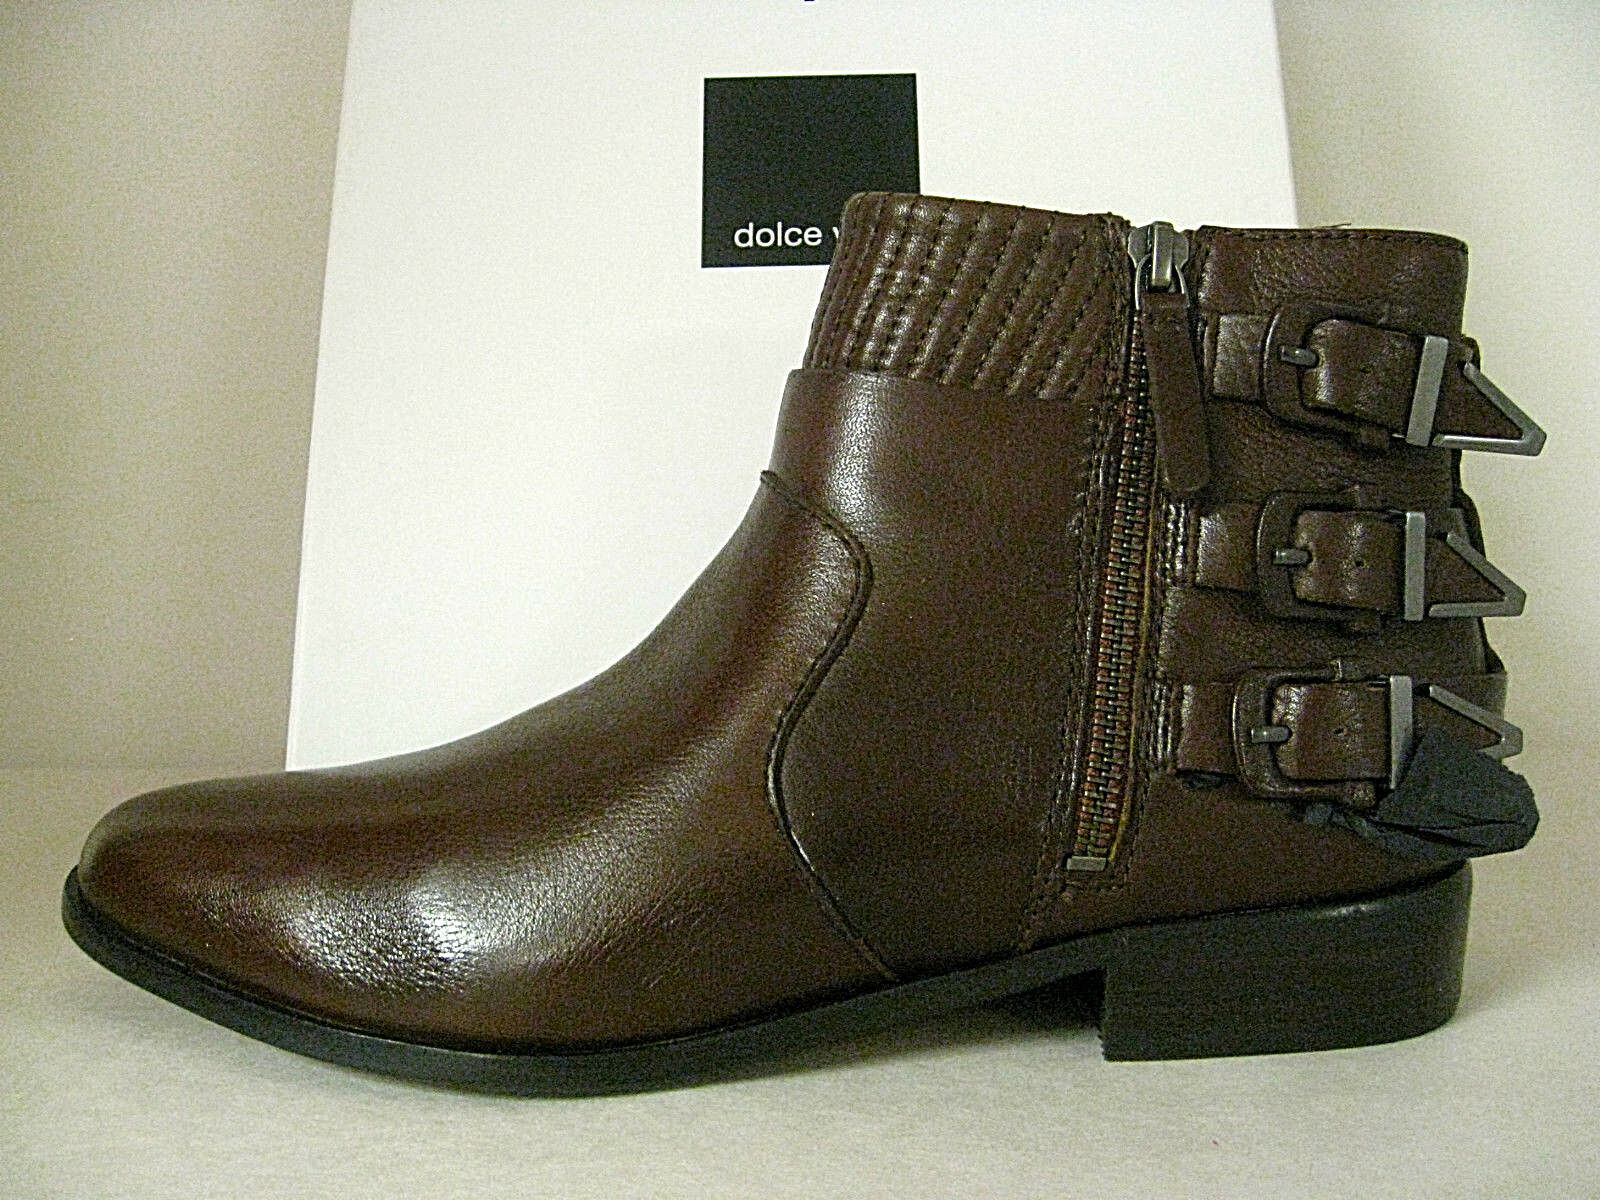 DOLCE VITA - RALPHY CHOCOLATE BUCKLE LEATHER ANKLE BOOTIE SZ 8, RETAIL 199